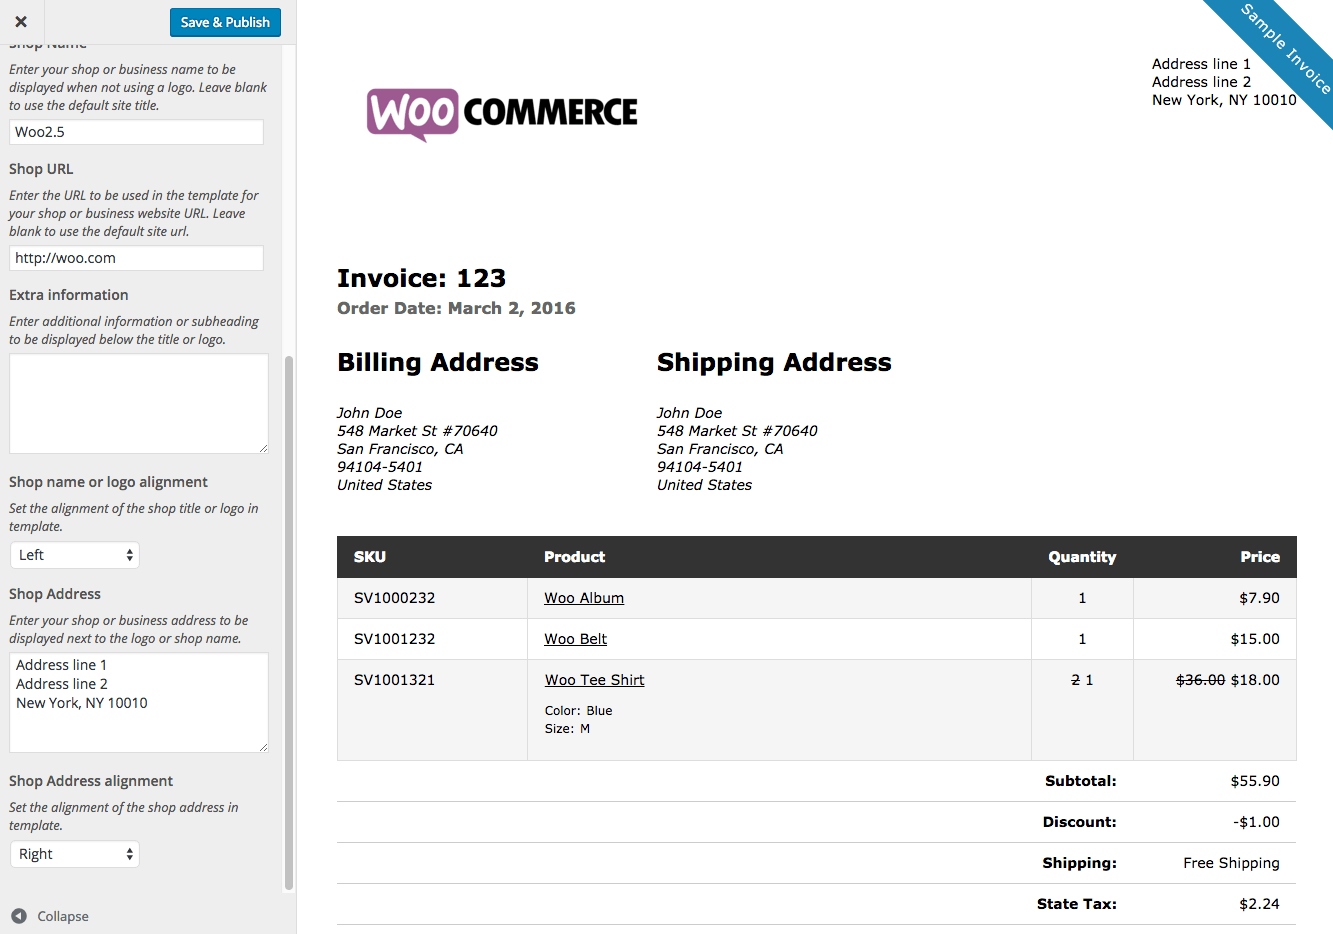 Modaoxus  Picturesque Woocommerce Print Invoices Amp Packing Lists  Woocommerce Docs With Gorgeous Woocommerce Print Invoices  Packing Lists Customizer With Breathtaking Overdue Invoices Also How Do I Find Invoice Price On A New Car In Addition Invoice Approval Stamp And Free Printable Business Invoices As Well As Fresh Invoice Additionally Cheap Invoices From Docswoocommercecom With Modaoxus  Gorgeous Woocommerce Print Invoices Amp Packing Lists  Woocommerce Docs With Breathtaking Woocommerce Print Invoices  Packing Lists Customizer And Picturesque Overdue Invoices Also How Do I Find Invoice Price On A New Car In Addition Invoice Approval Stamp From Docswoocommercecom